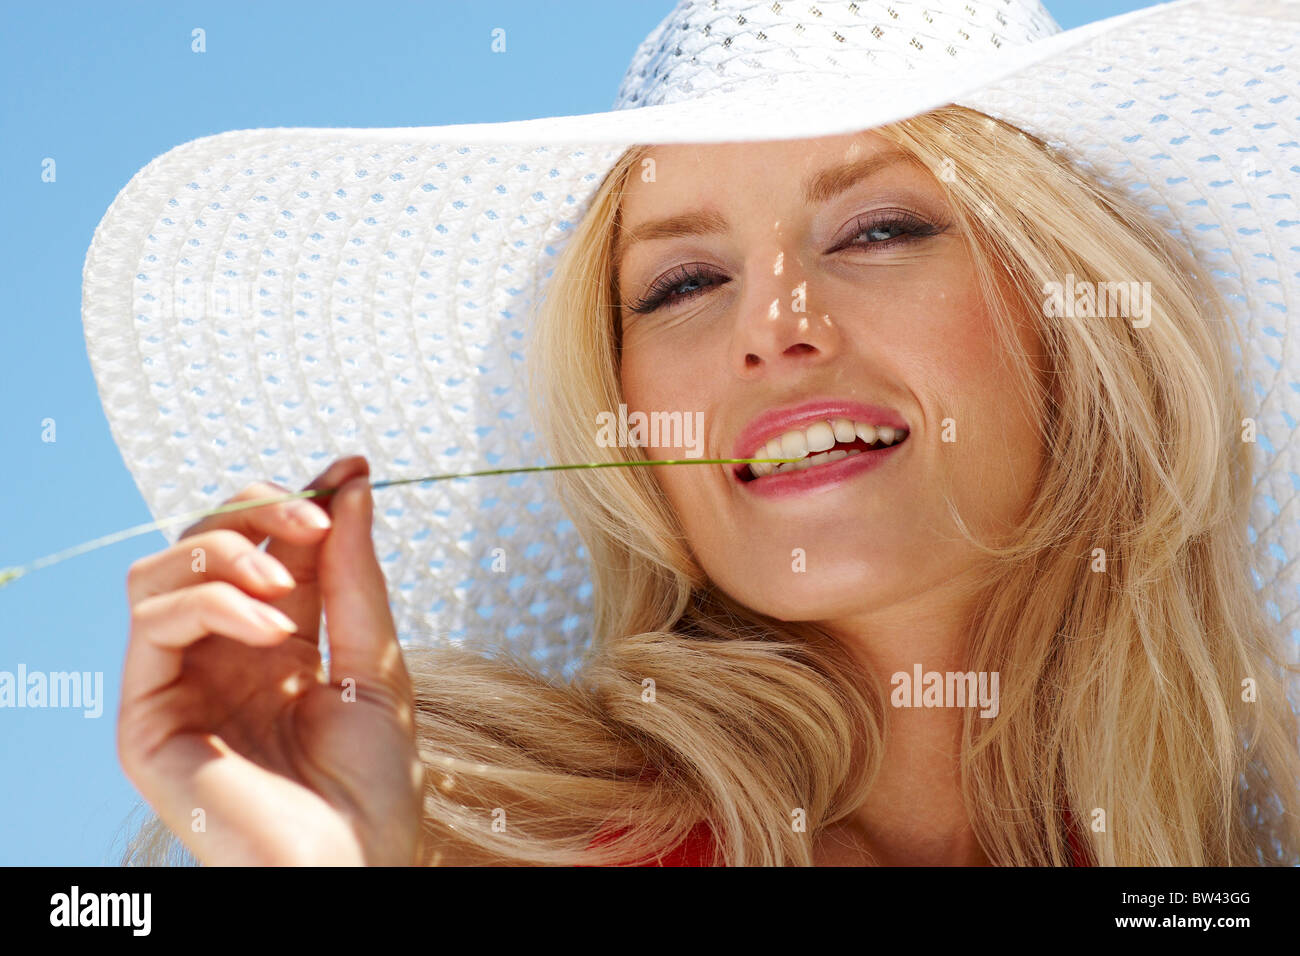 Pretty blonde in elegant hat looking at camera against blue sky Stock Photo